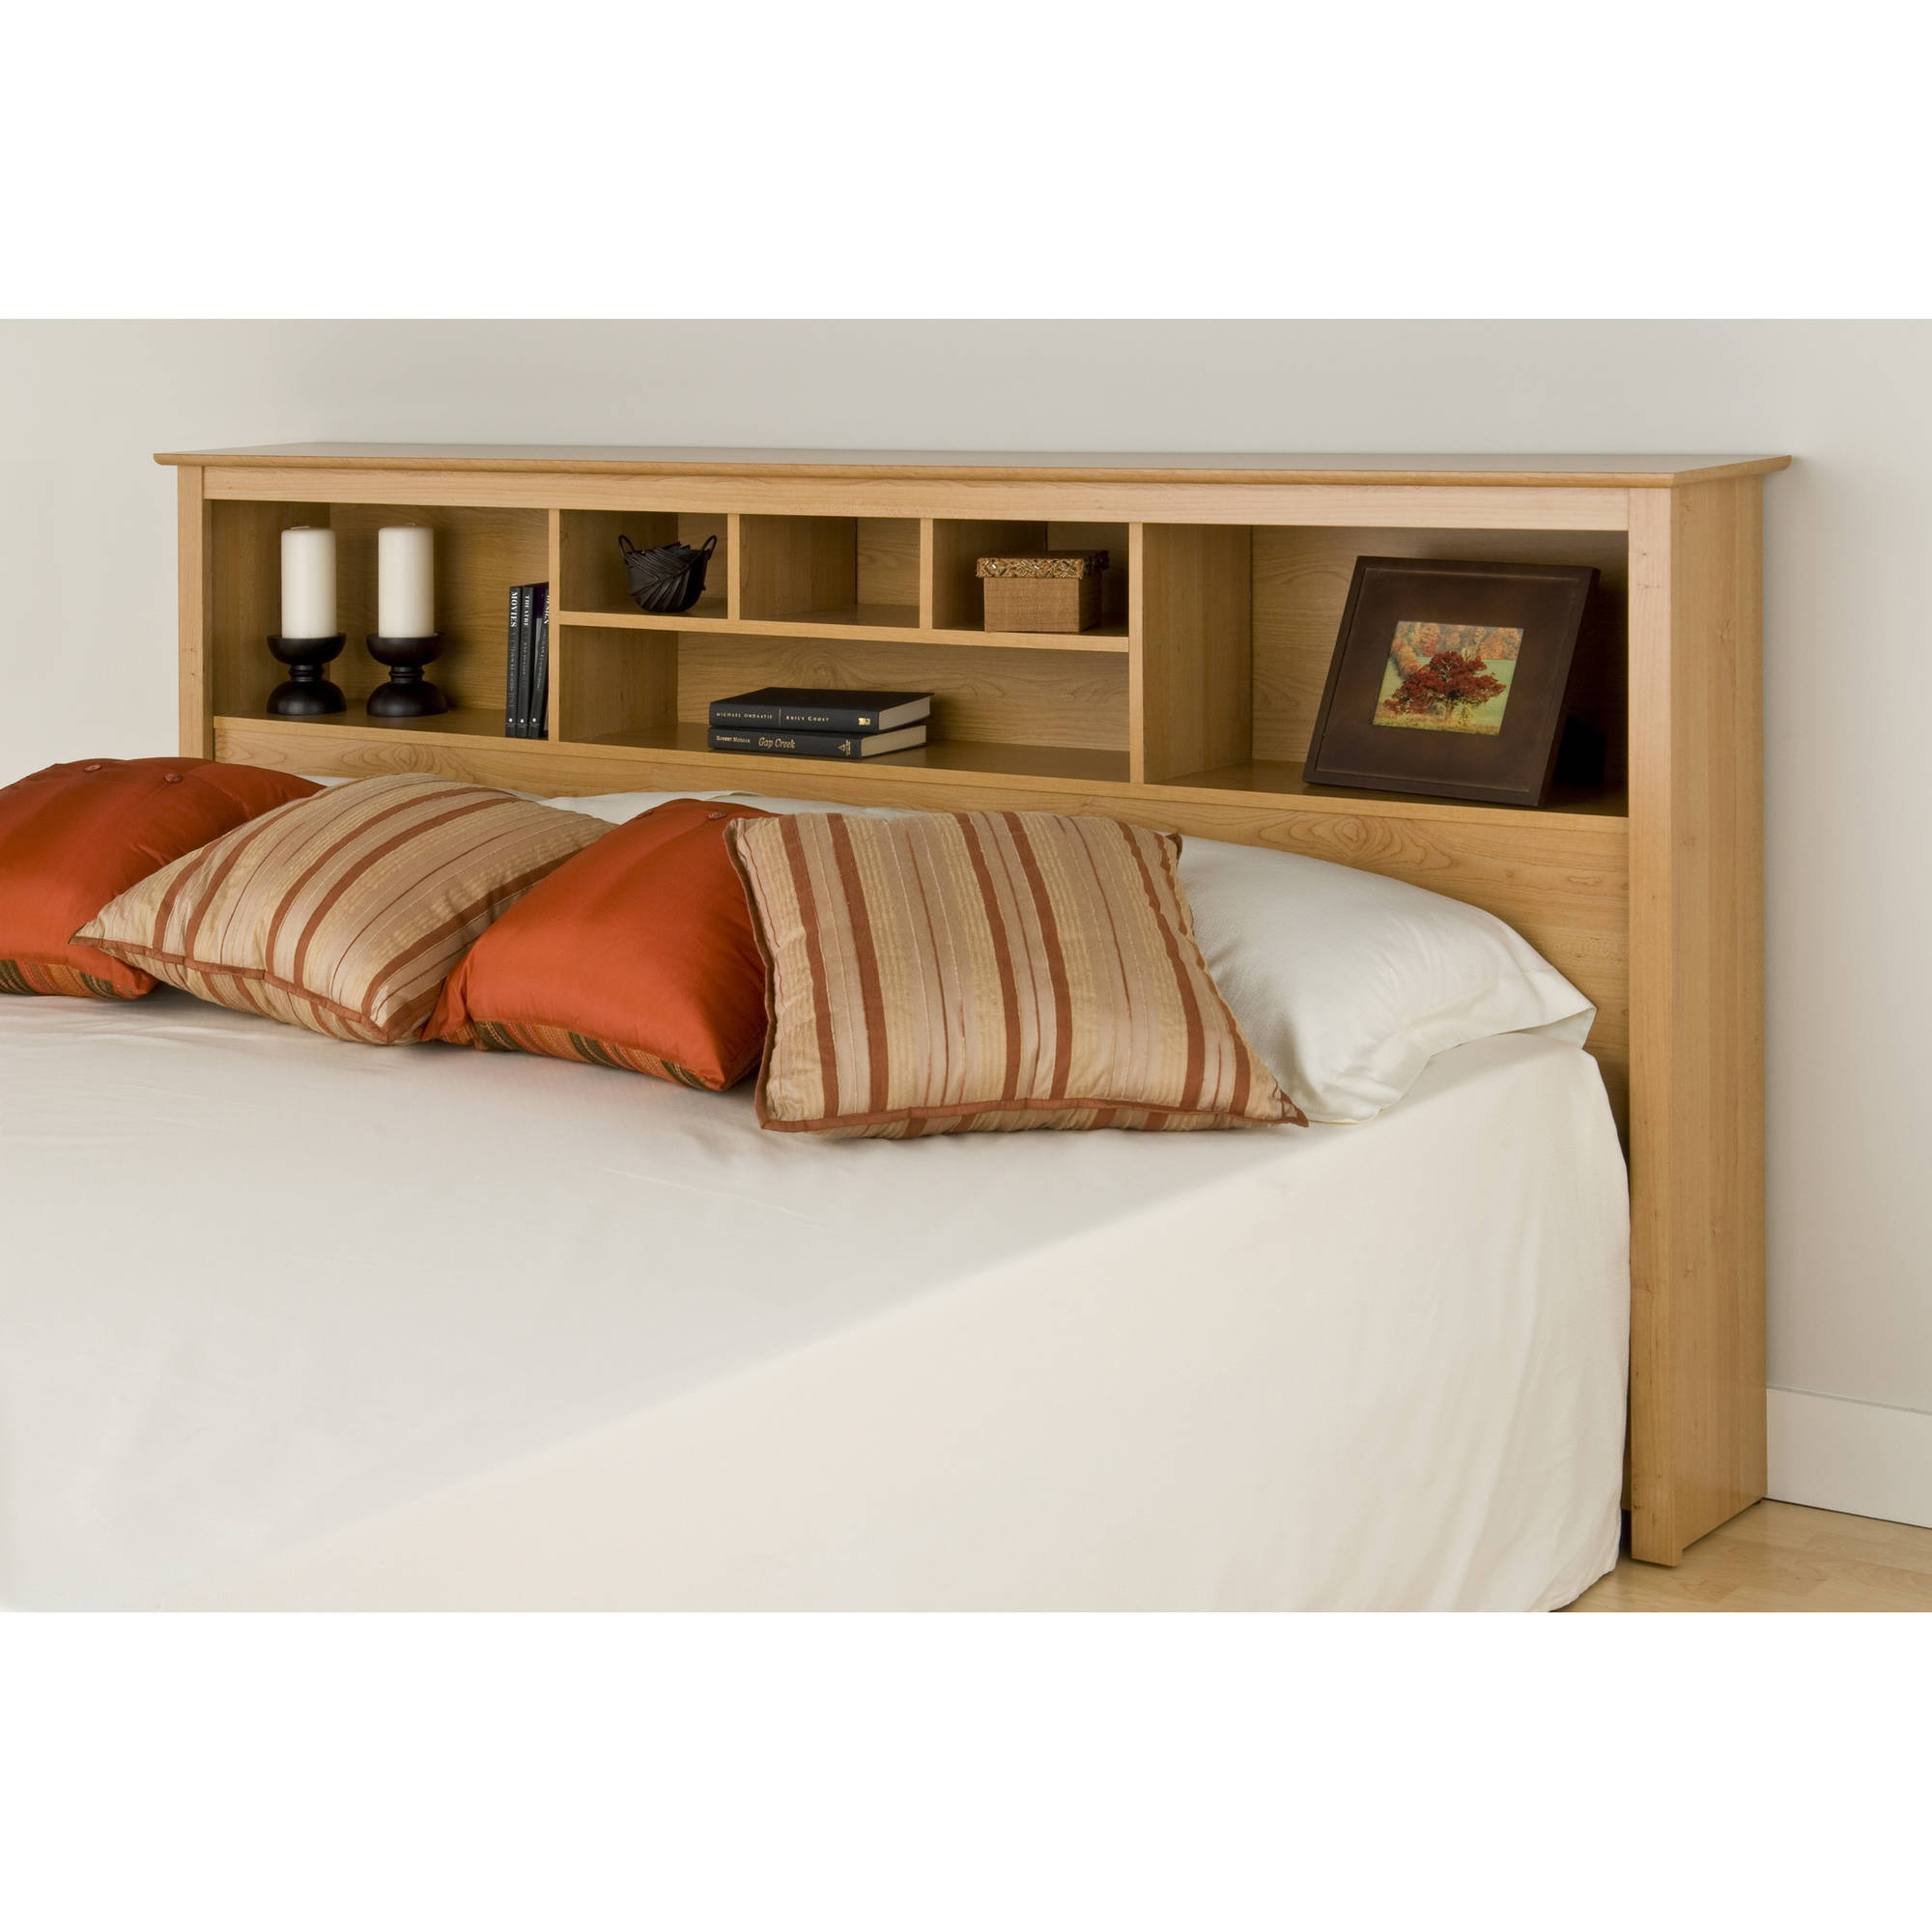 Beau Prepac Sonoma King Storage Headboard, Multiple Colors   Walmart.com